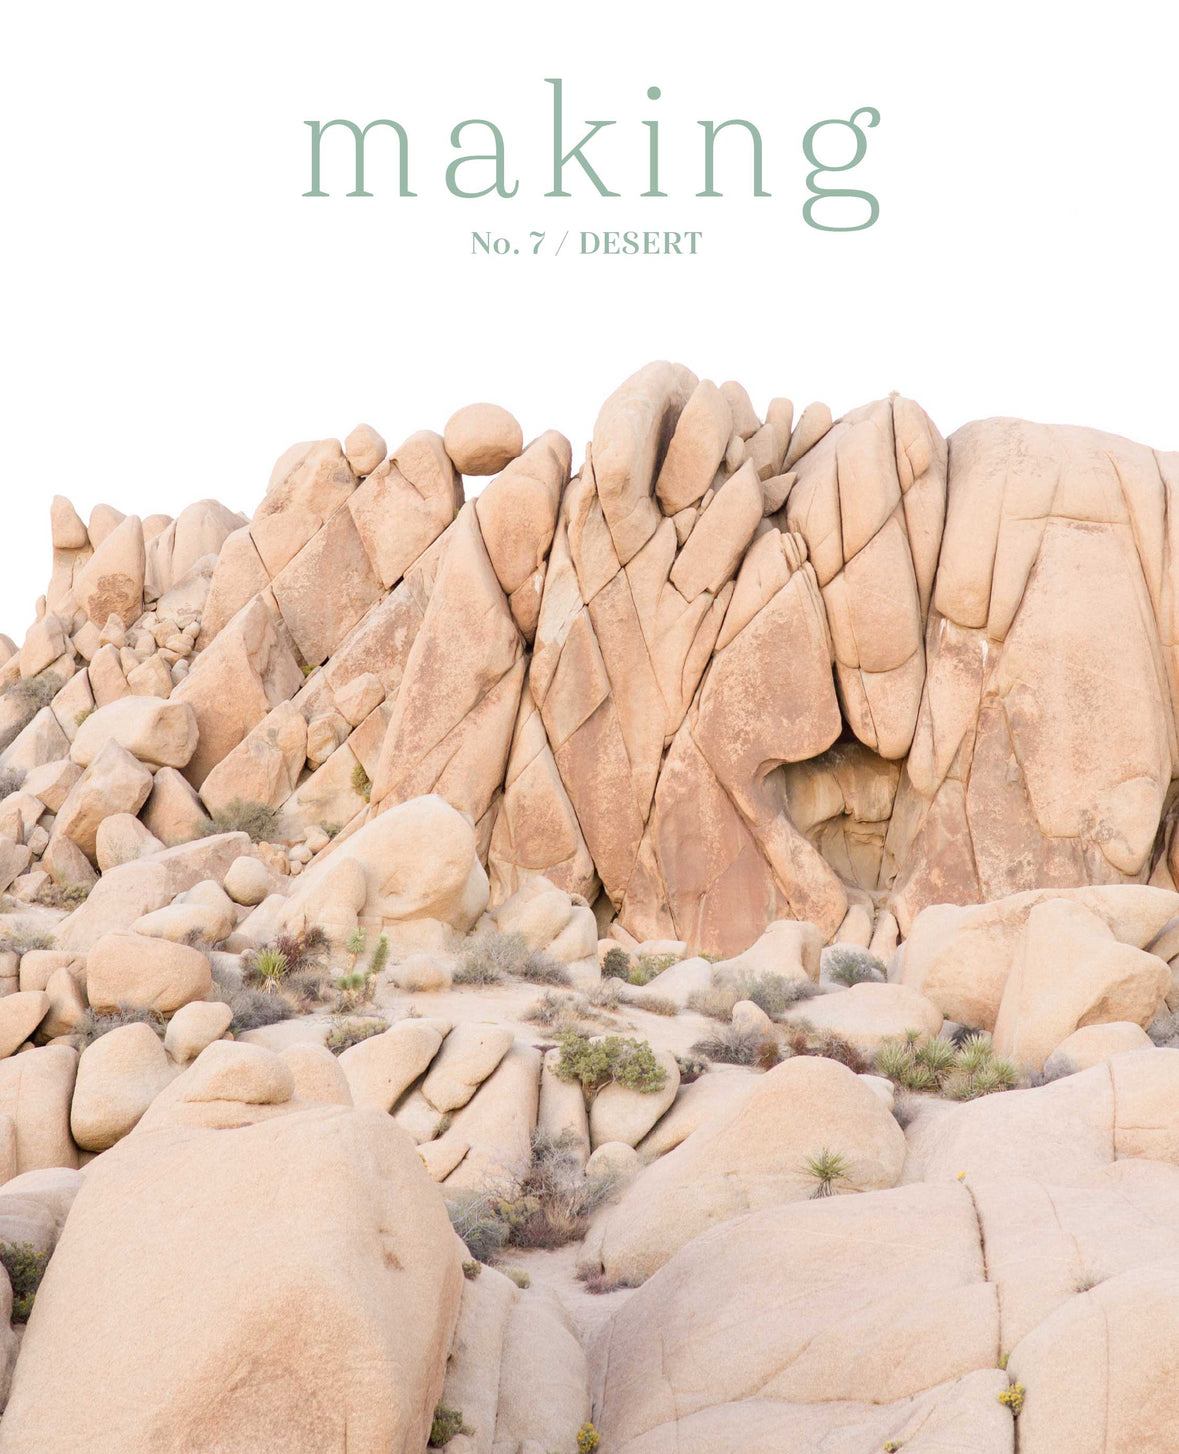 2019 Subscription to Making - issues No  7 & 8